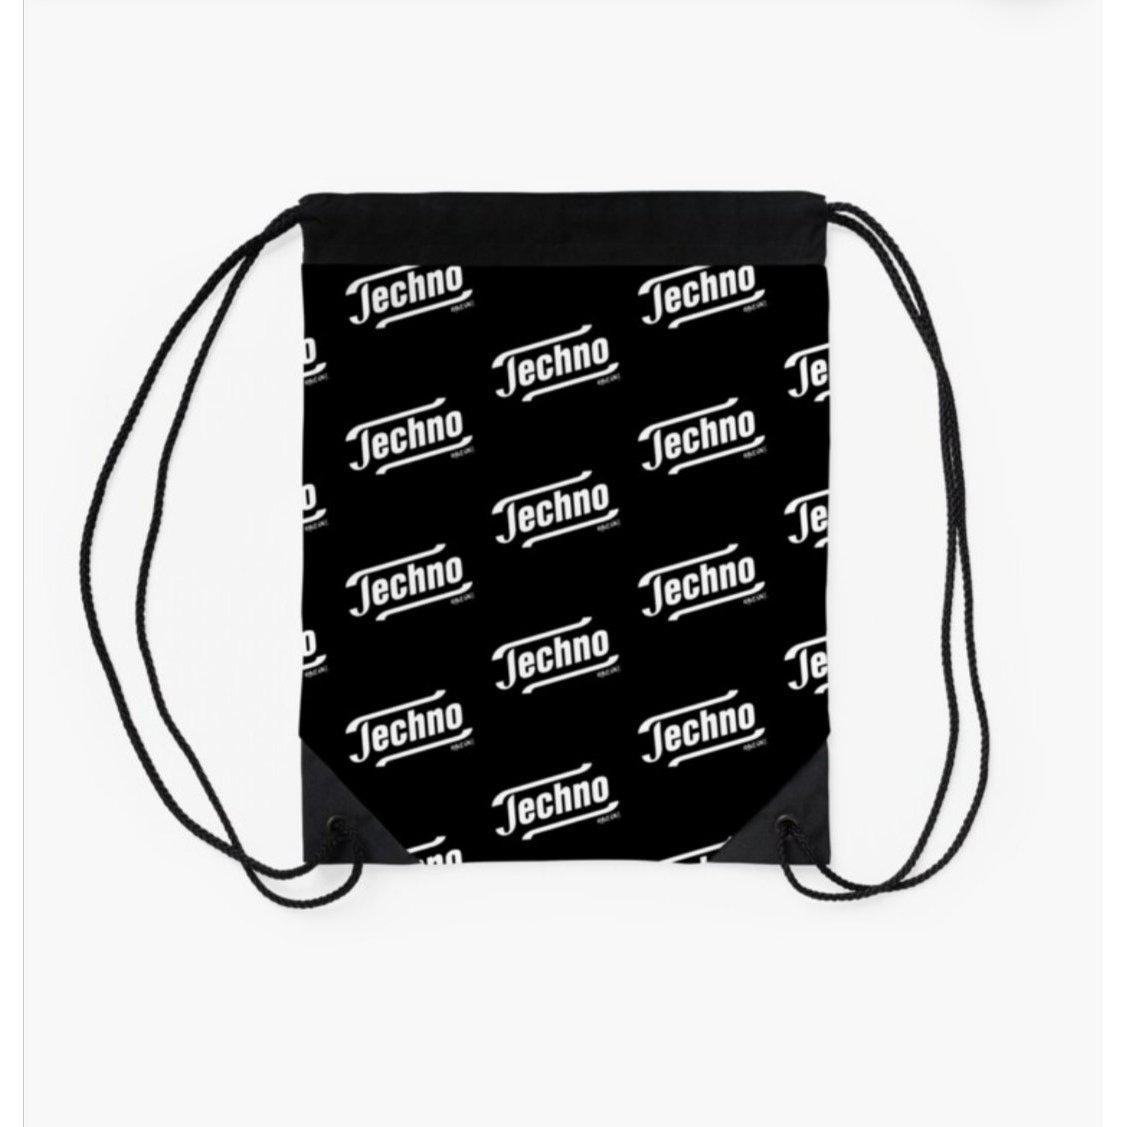 Techno Tempo Gym Bag - Rave On!® bag - Rave On!® the club & techno scene shop for cool young fashion streetwear style & fashion outfits + sexy festival 420 stuff